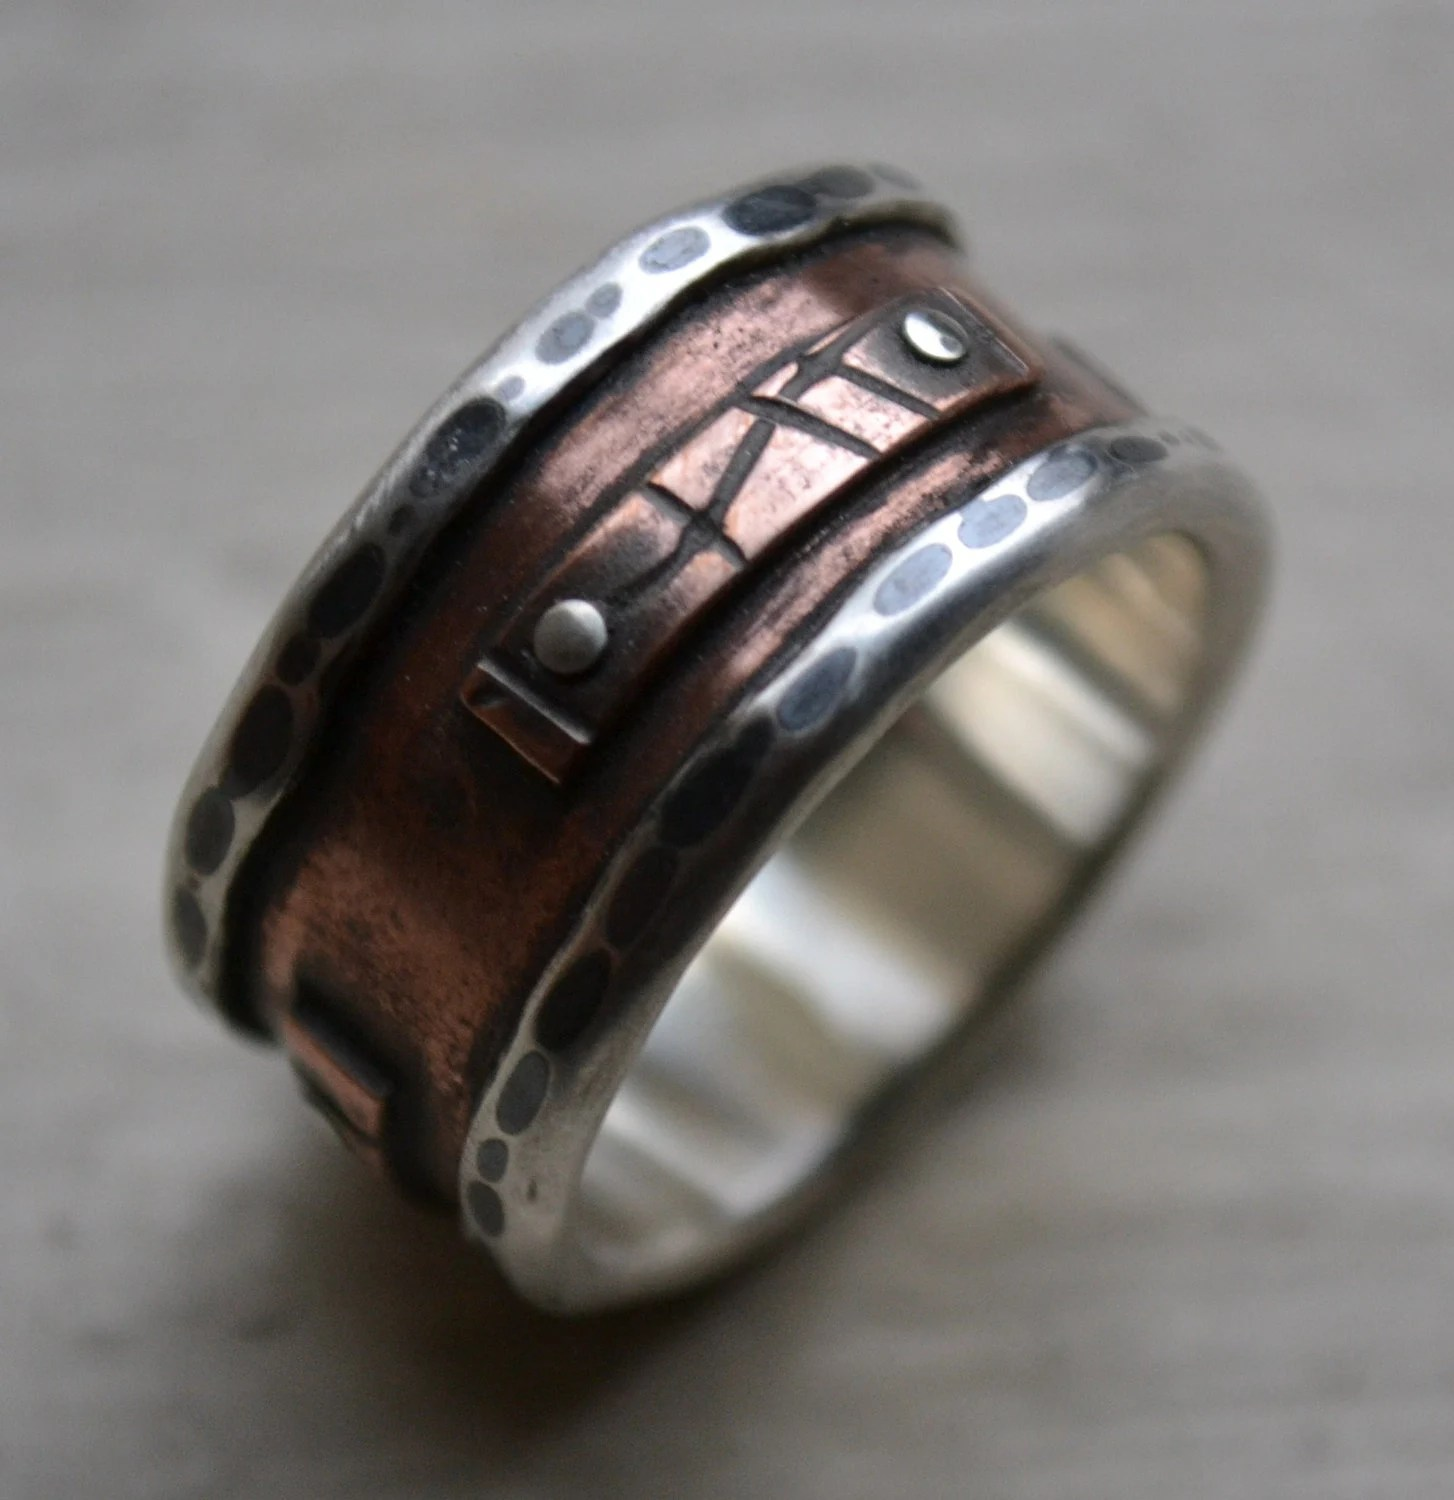 maggi designs custom mens wedding bands mens wide band ring rustic fine silver and copper oxidized handmade artisan designed men s wedding ring silver rivets customized